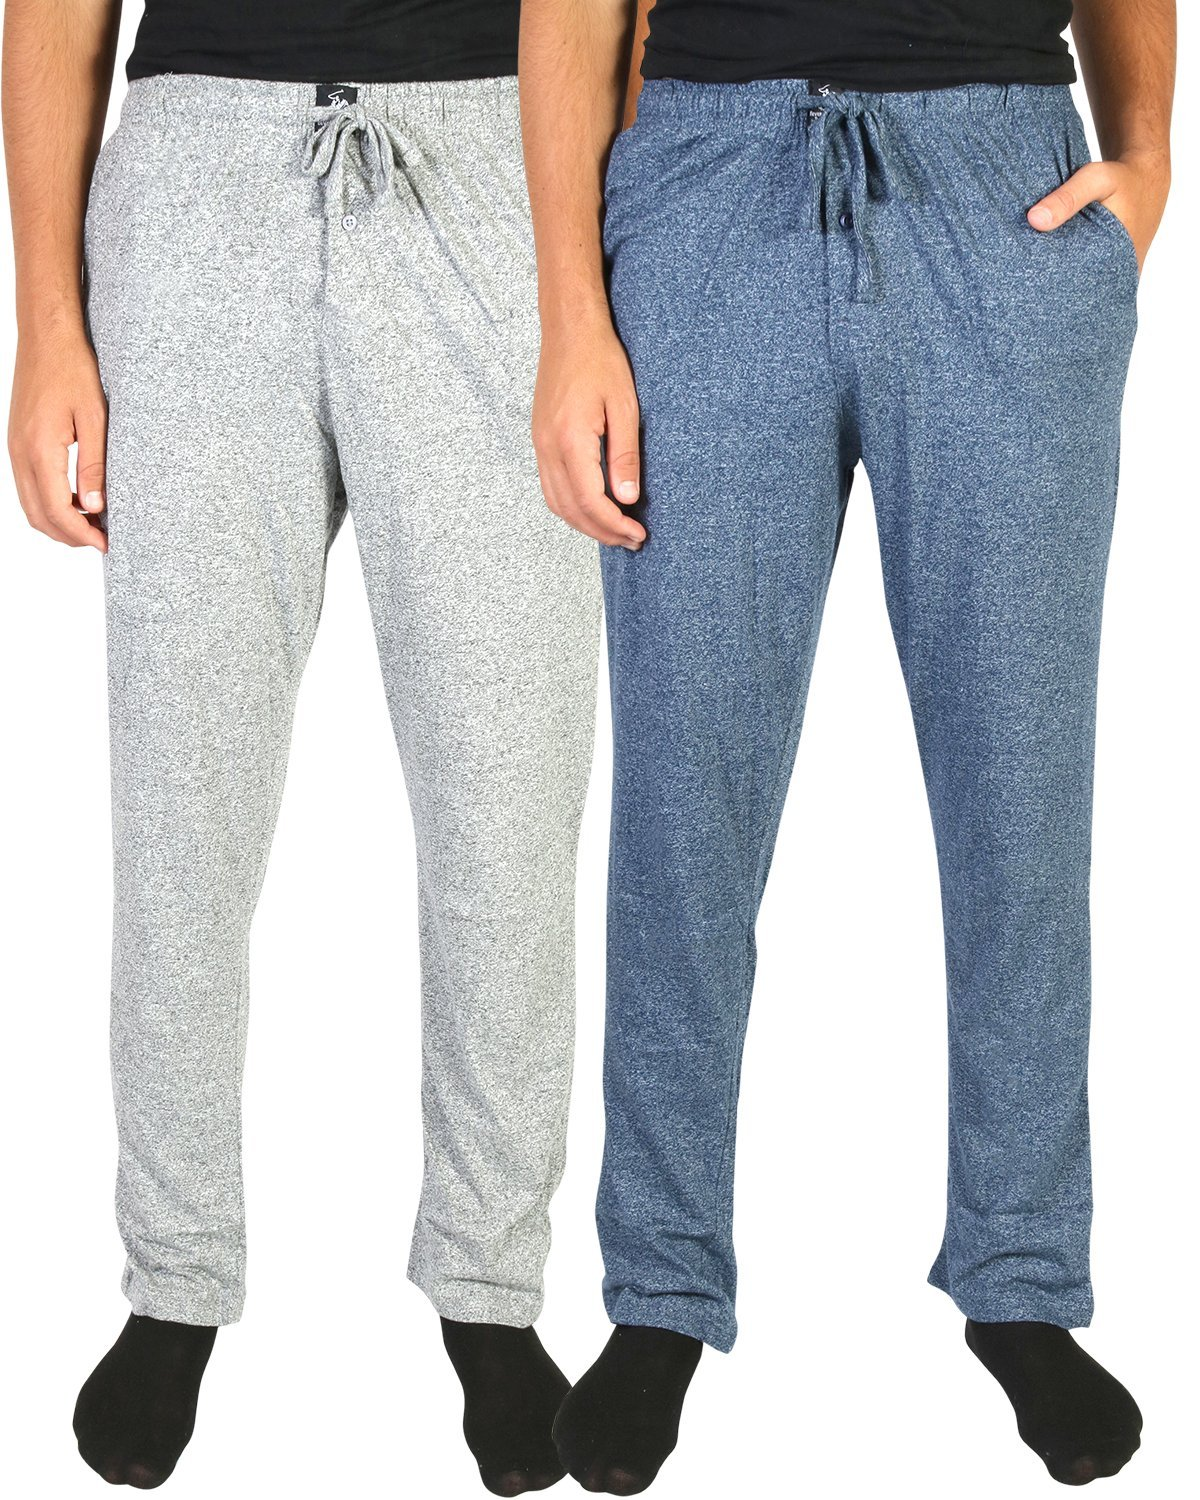 Beverly Hills Polo Club Men's Soft Touch Pajama Lounge Sleep Pants (2 Pack), Navy/Grey, Large (36-38)'